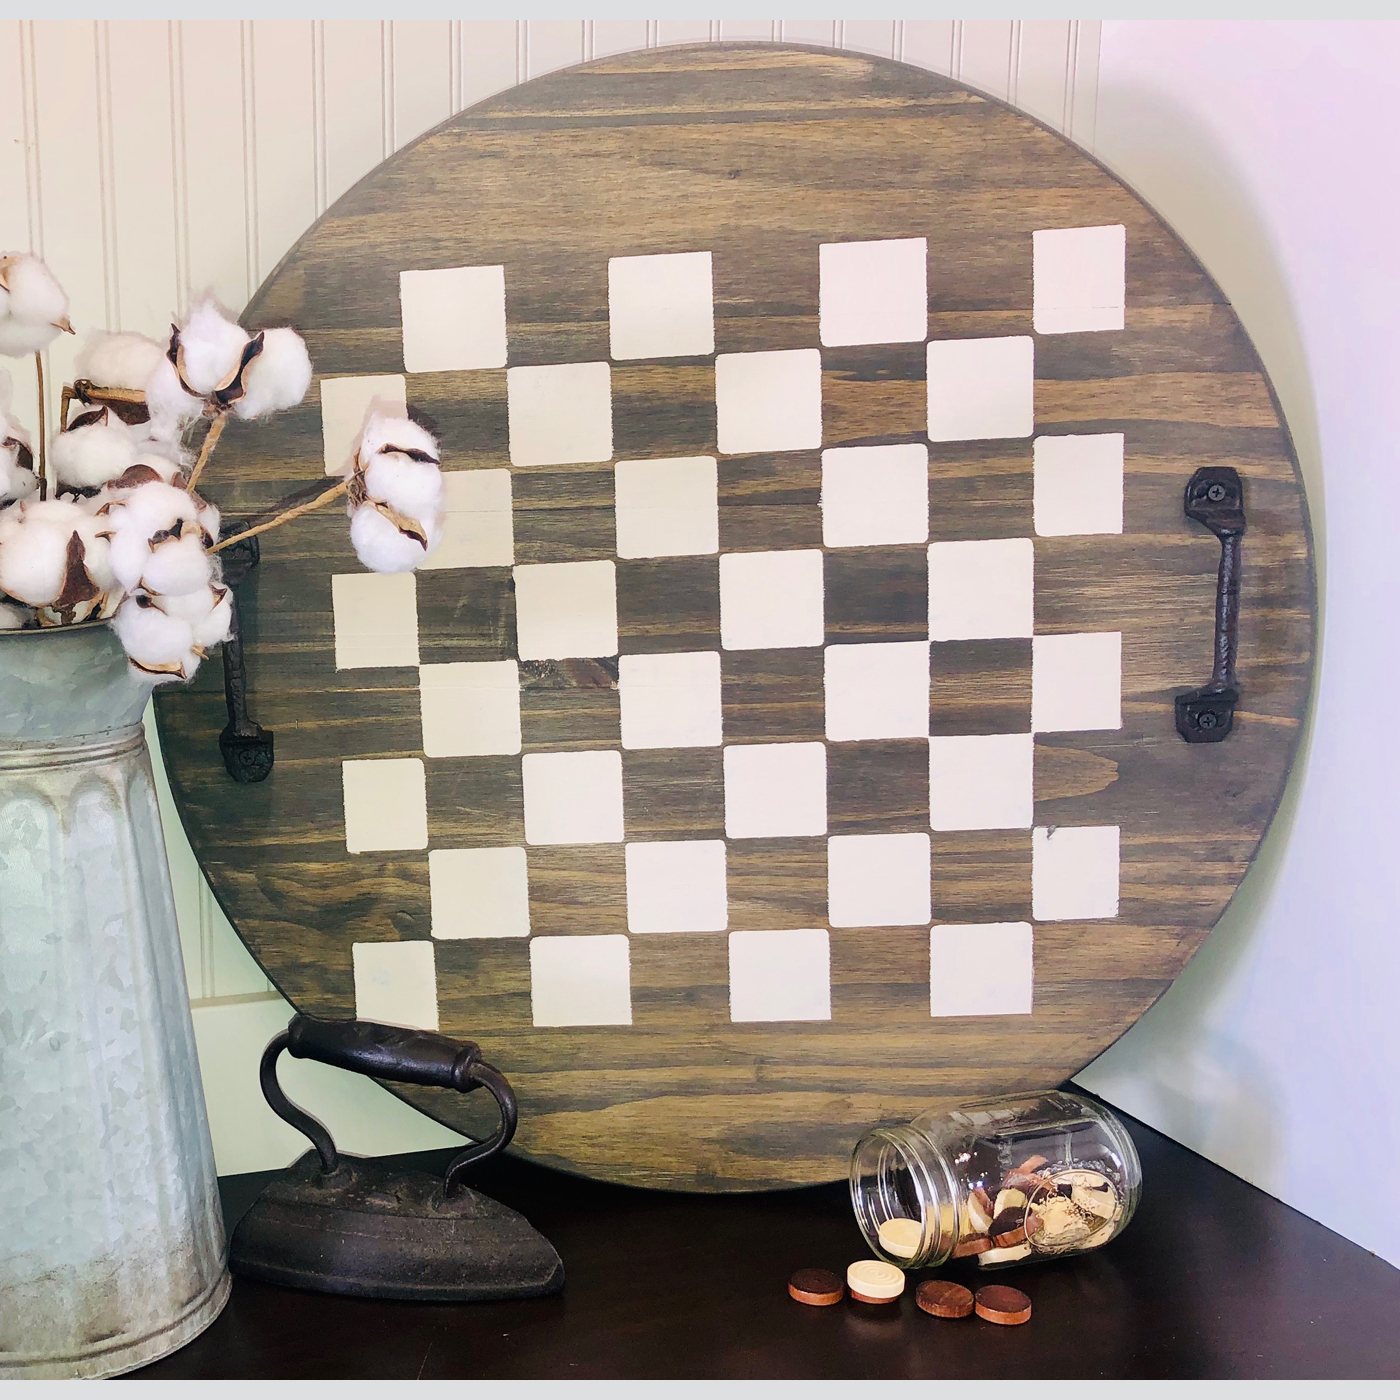 Checkers DIY wood signs